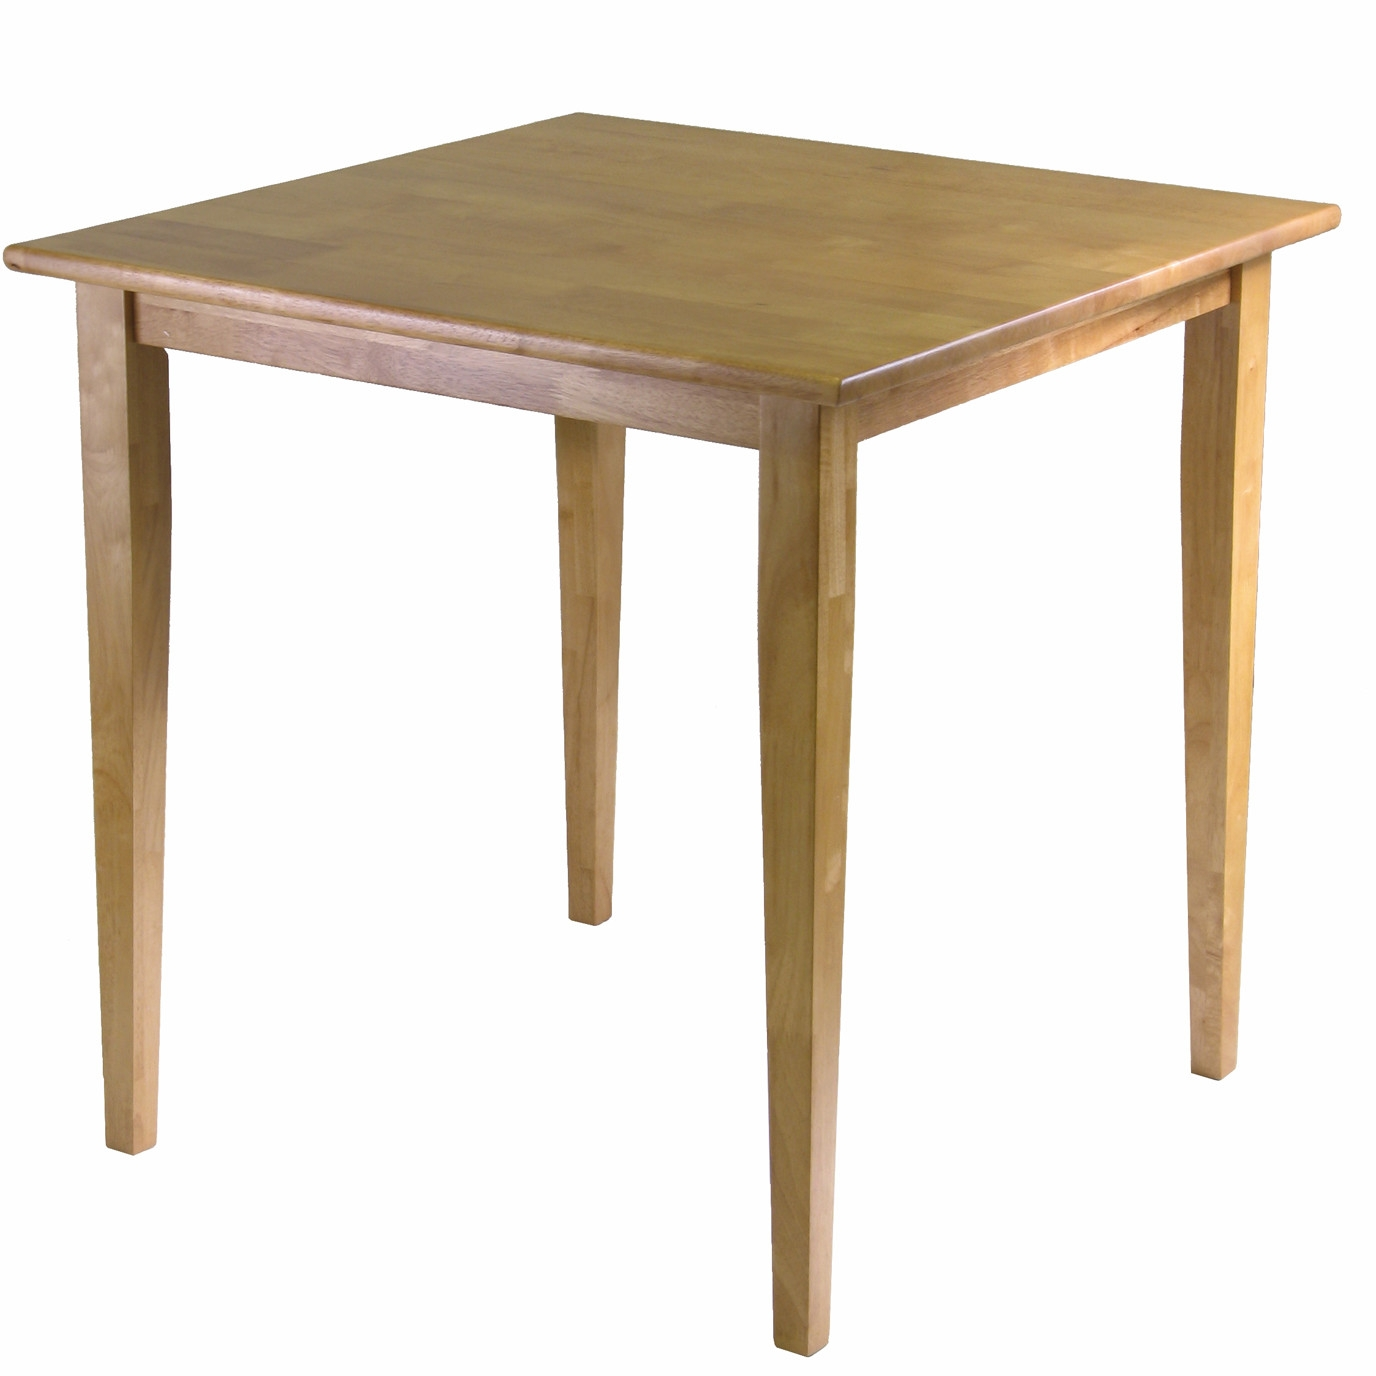 This Solid Wood Shaker Style Square Dining Table in Light Oak Finish would be a great addition to your home. It has a shaker style and a solid wood construction. Top Material: Wood; Top Material Details: Beech; Base Material: Manufactured wood, Wood; Hardware Material: Metal; Solid Wood Construction: Yes.